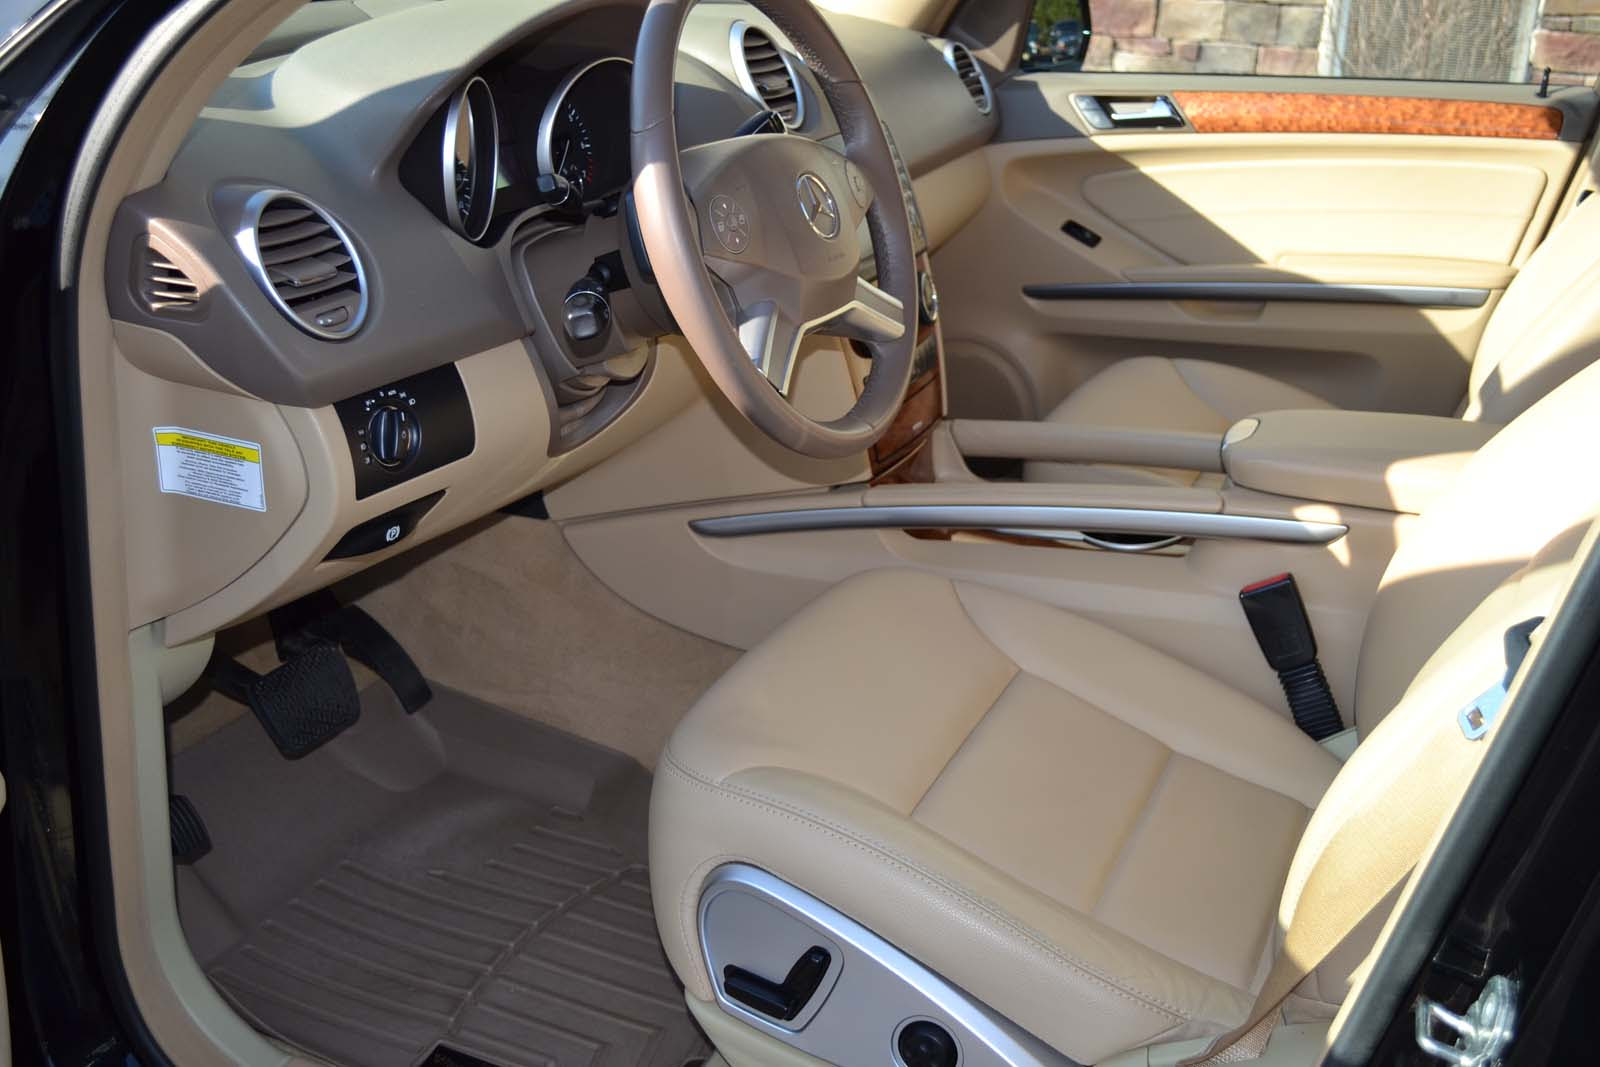 2009 Mercedes Benz ML350 4Matic Pre-Owned